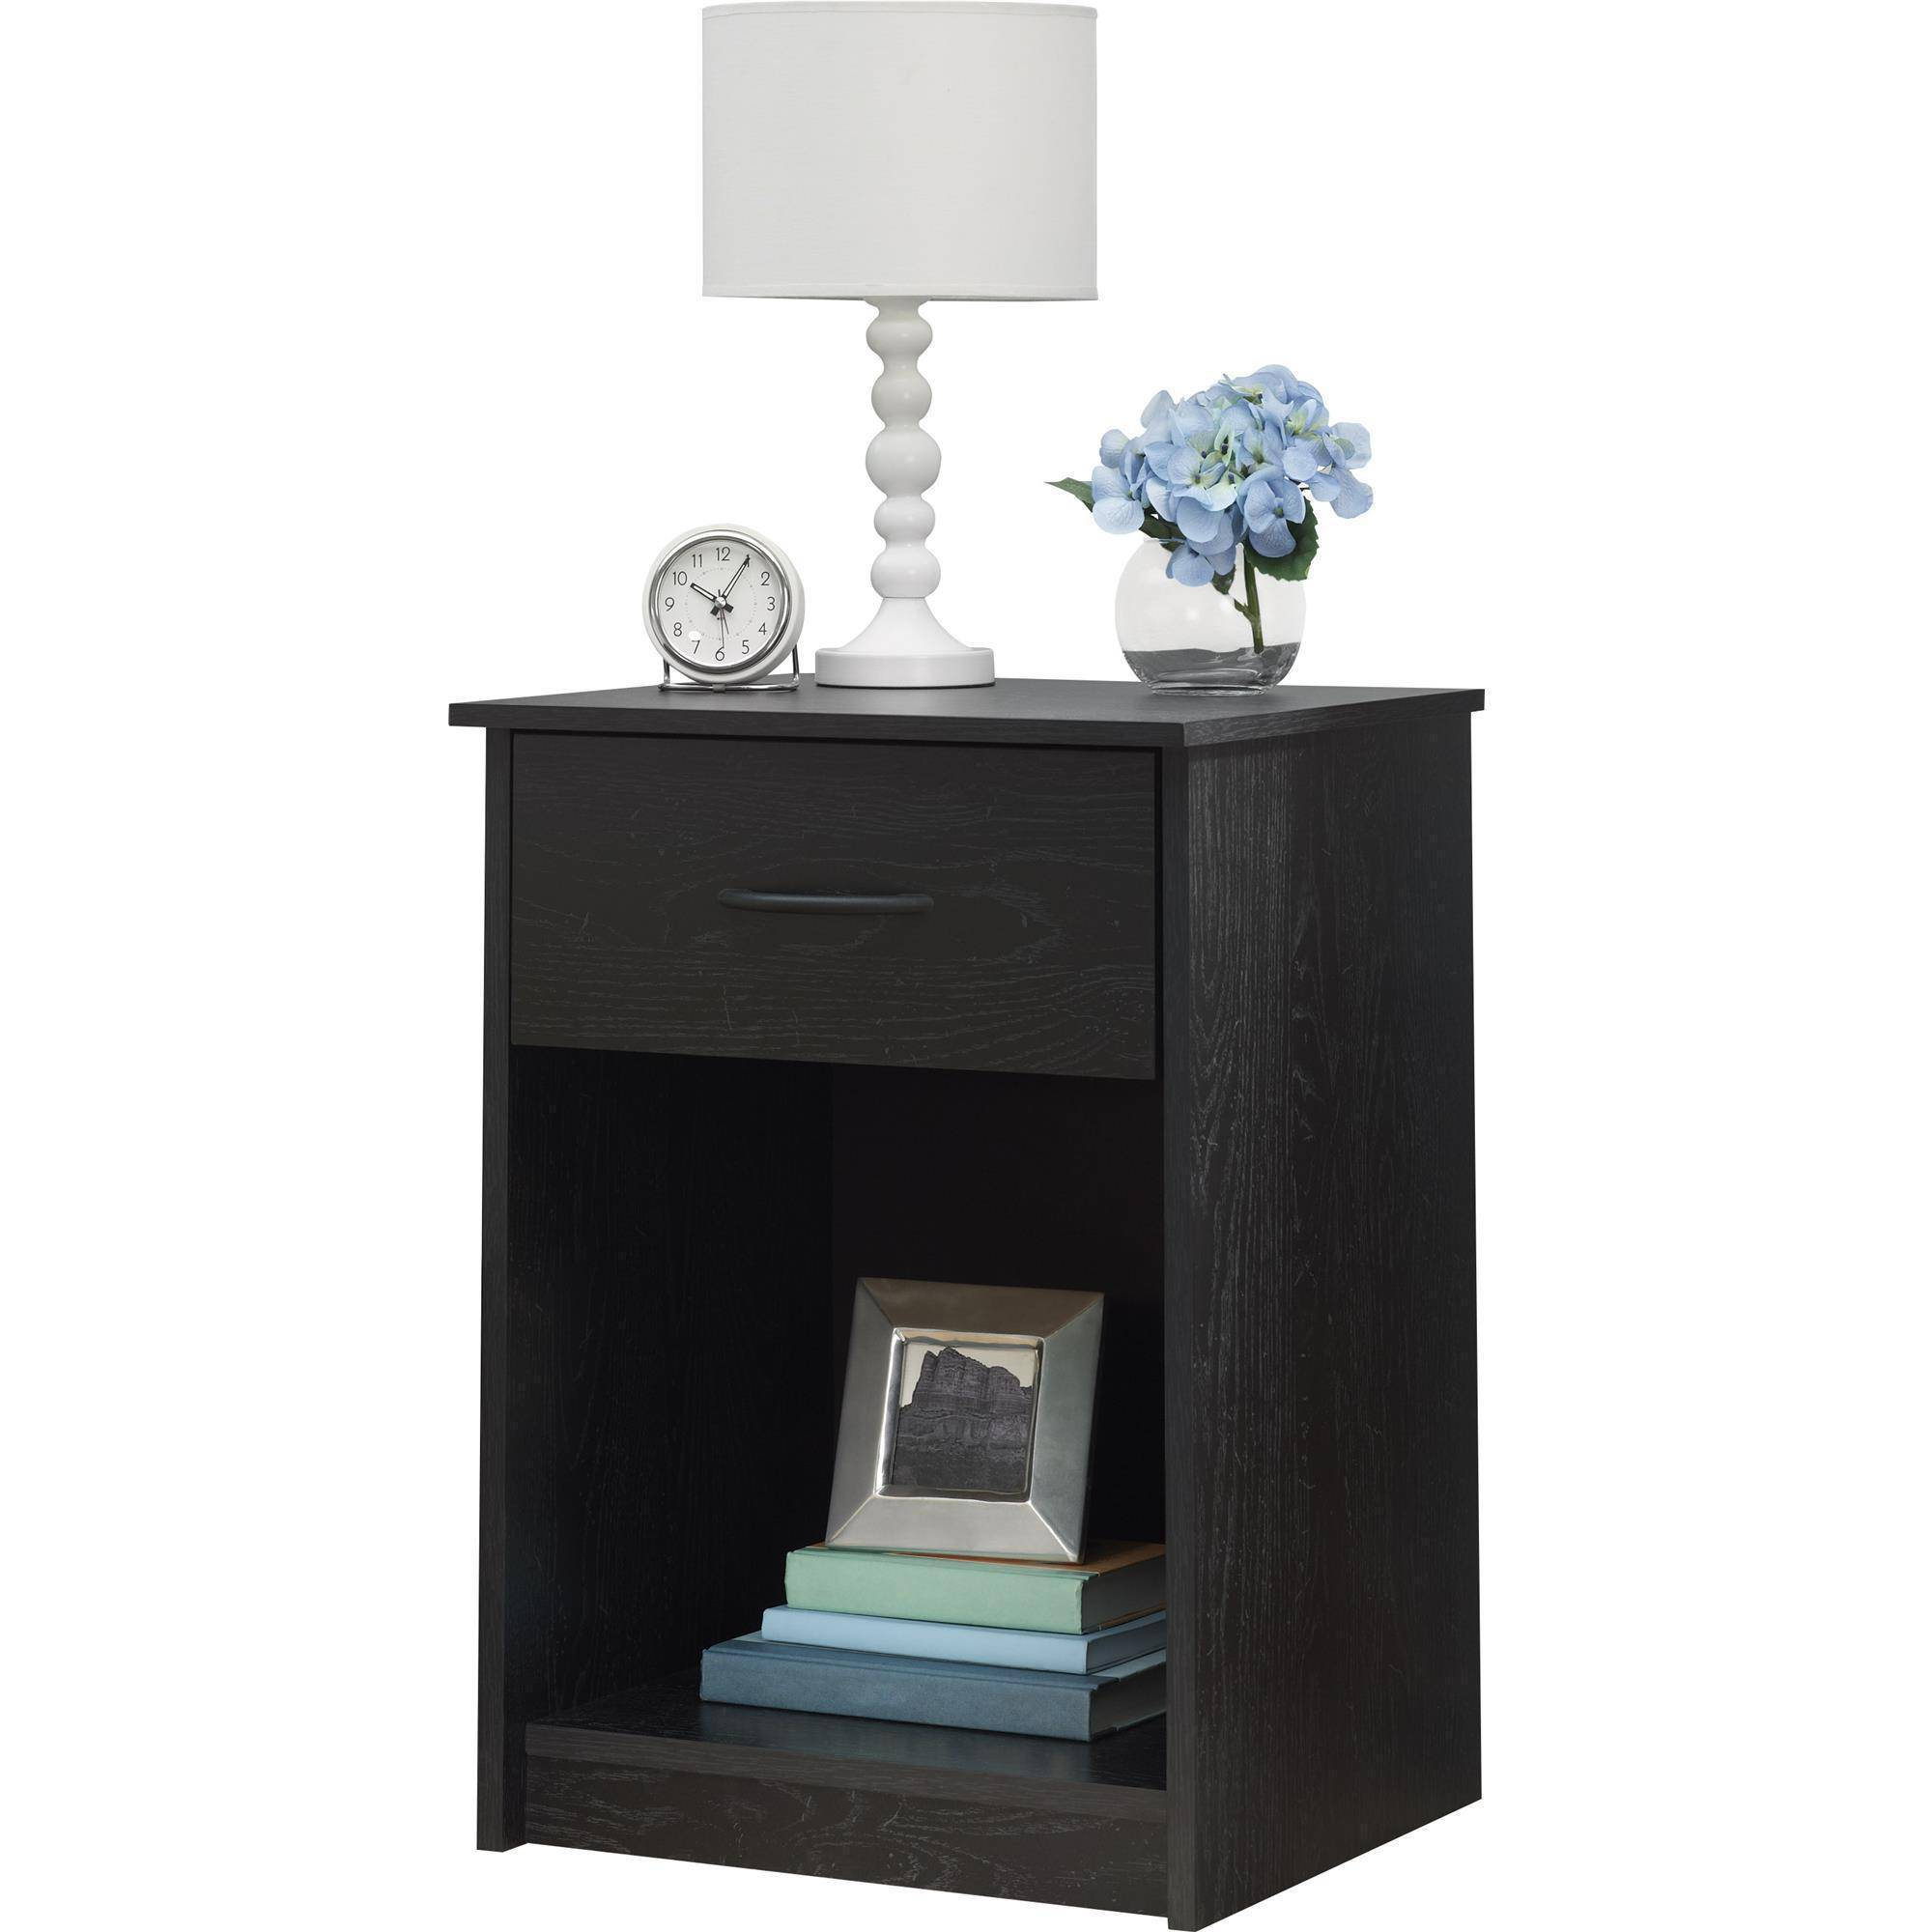 marble top kitchen table the terrific awesome mainstays nightstand drawer end espresso dark gray oak metal coffee with wood round glass dining and chairs wire magazine rack